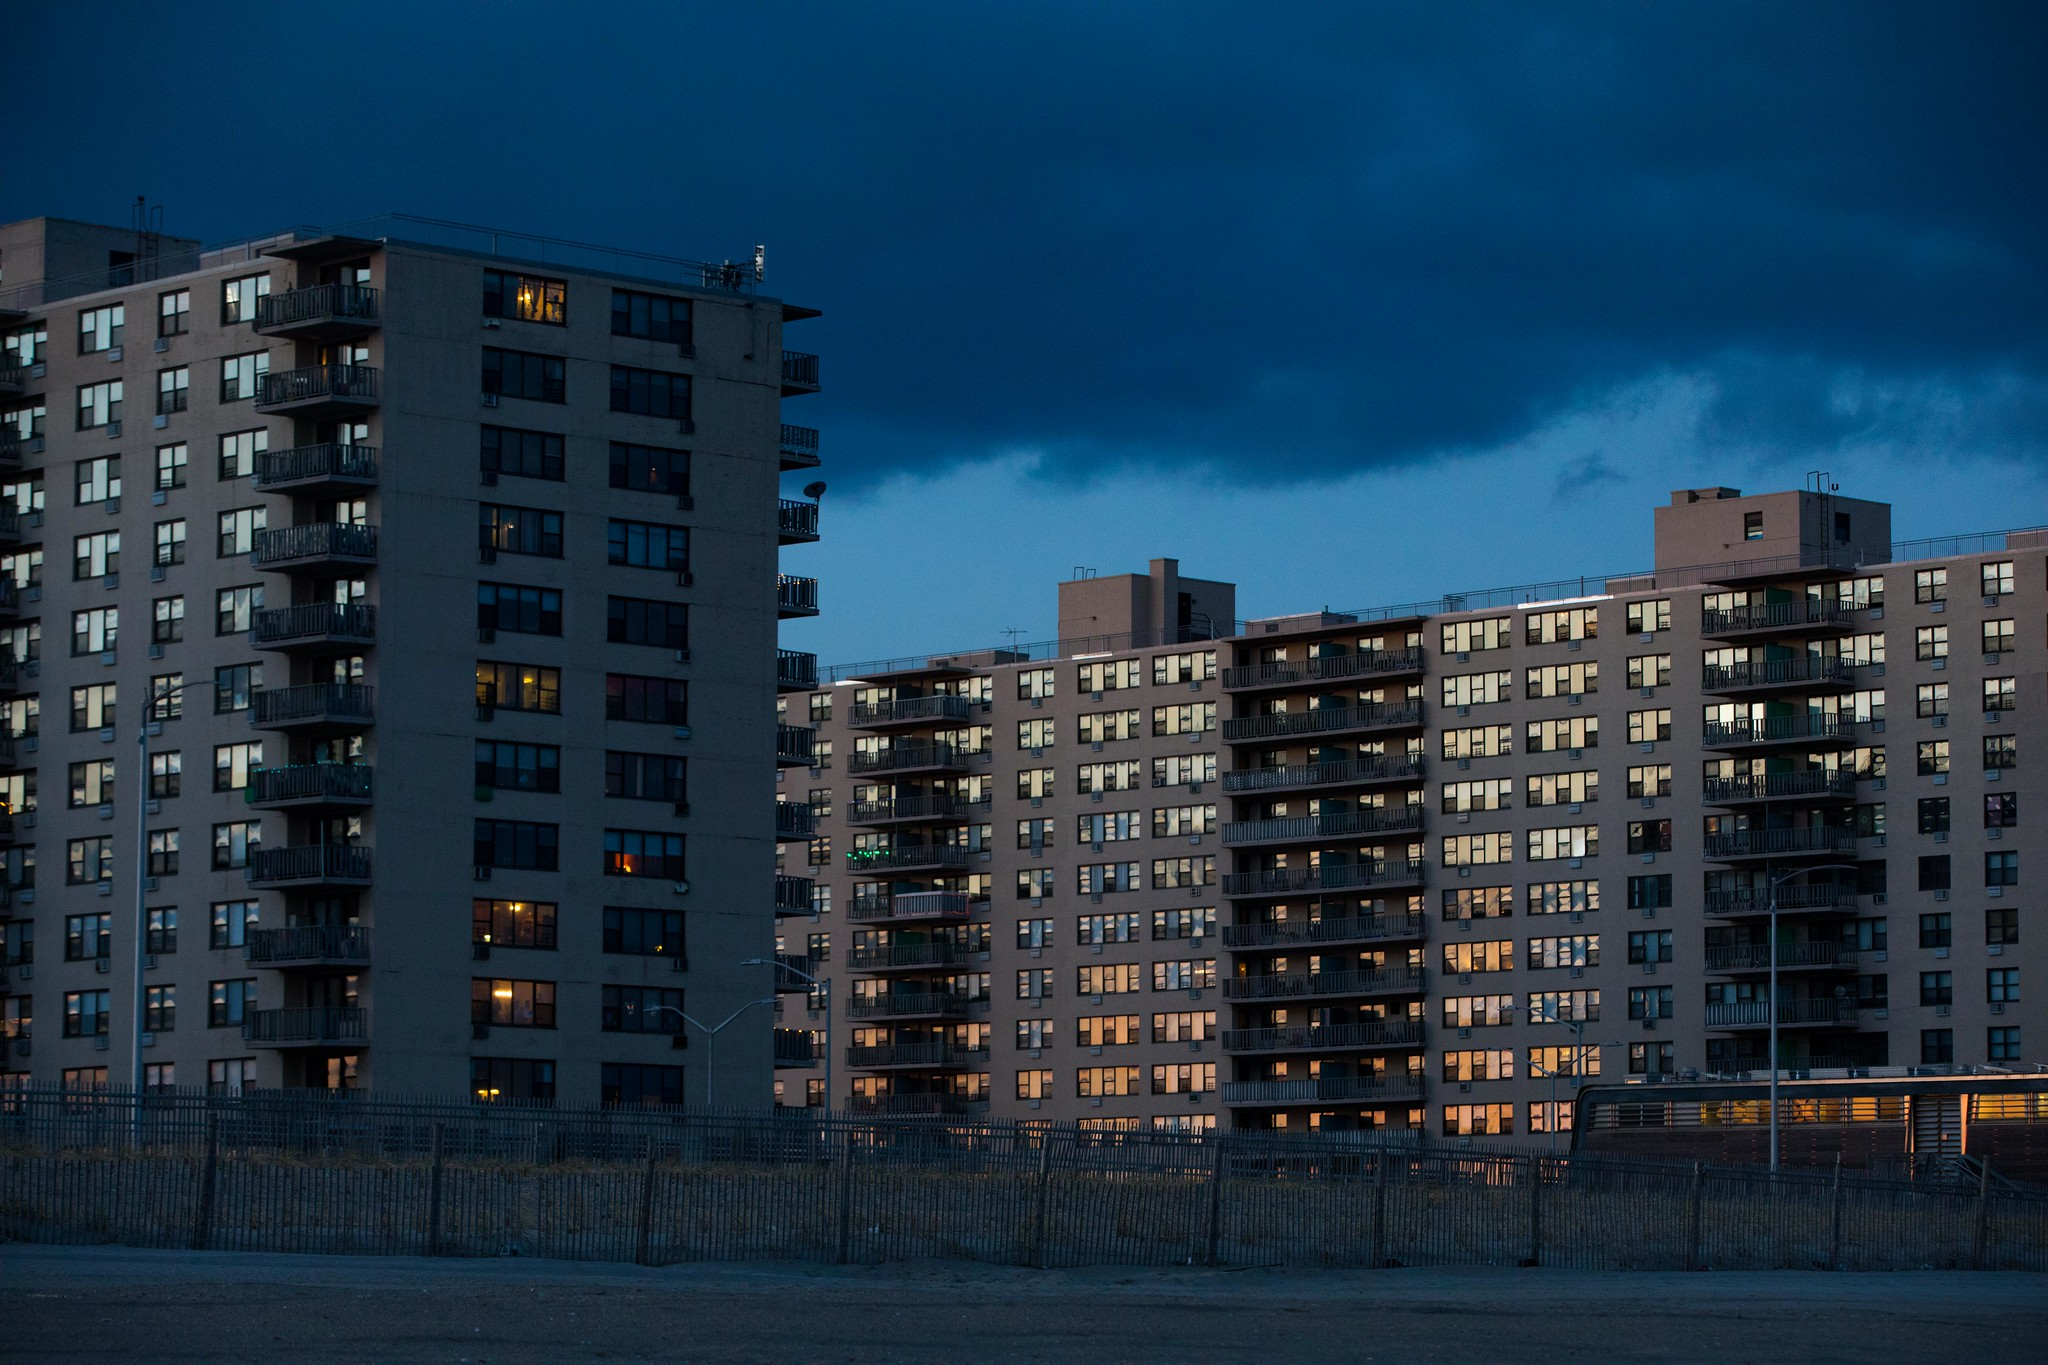 Three high-rise residential towers in Rockaway just off the beach. The setting sun reflects off the windows of the apartments.